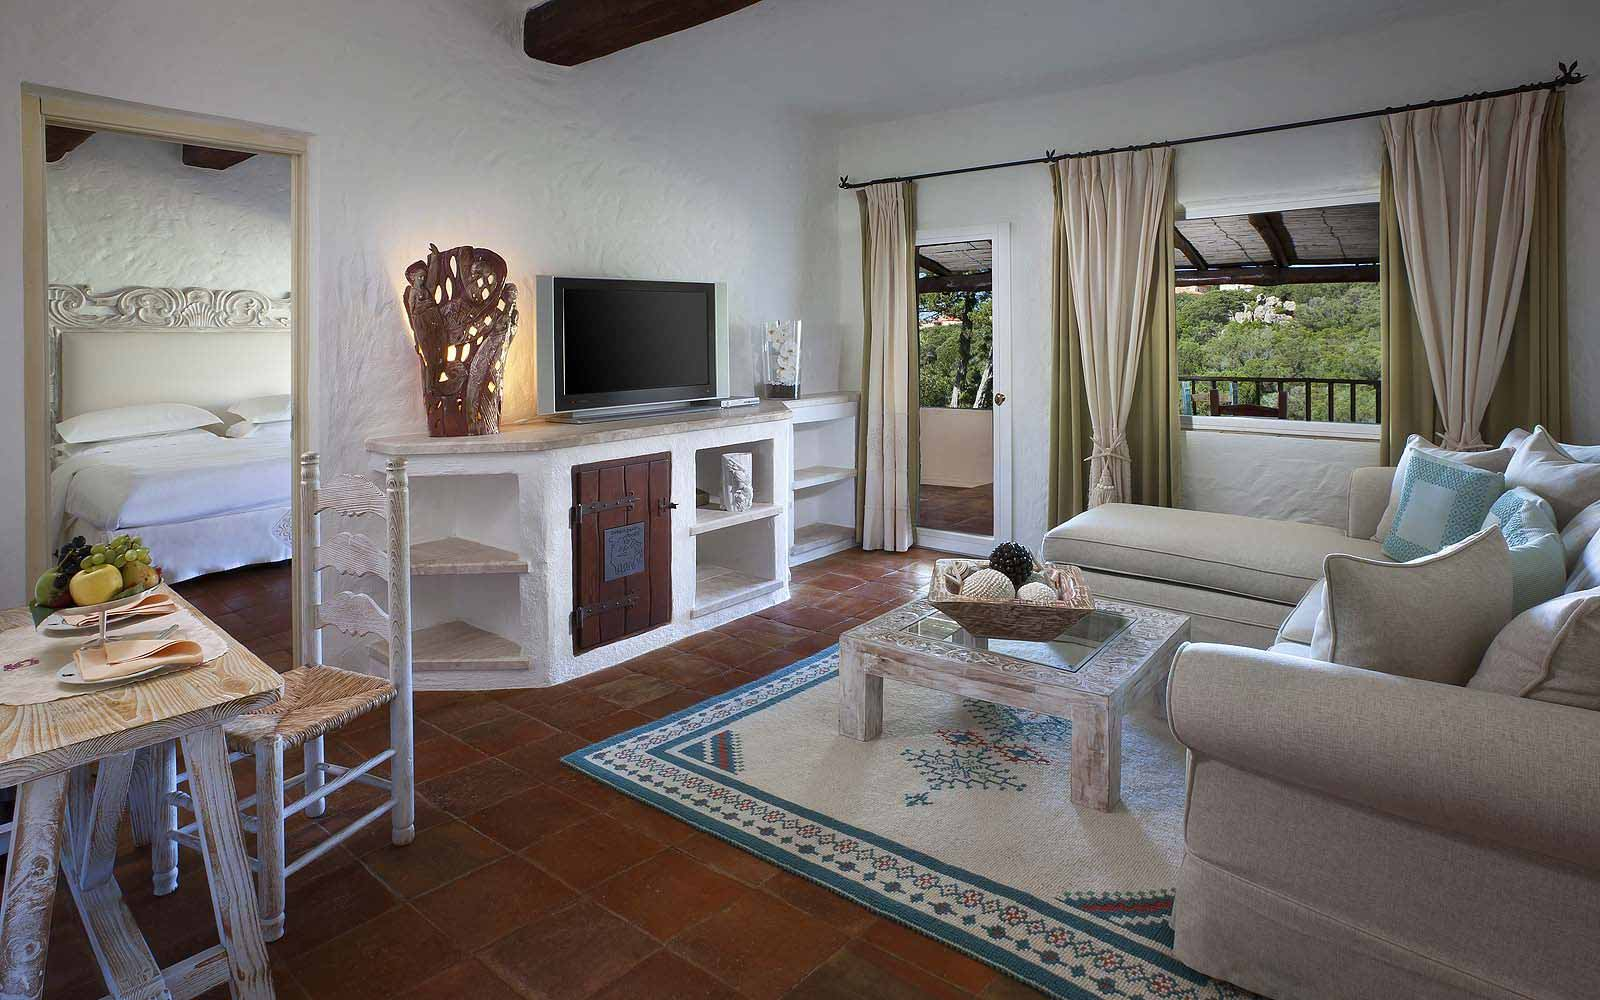 Lounge area of a Deluxe Suite at the Hotel Cervo